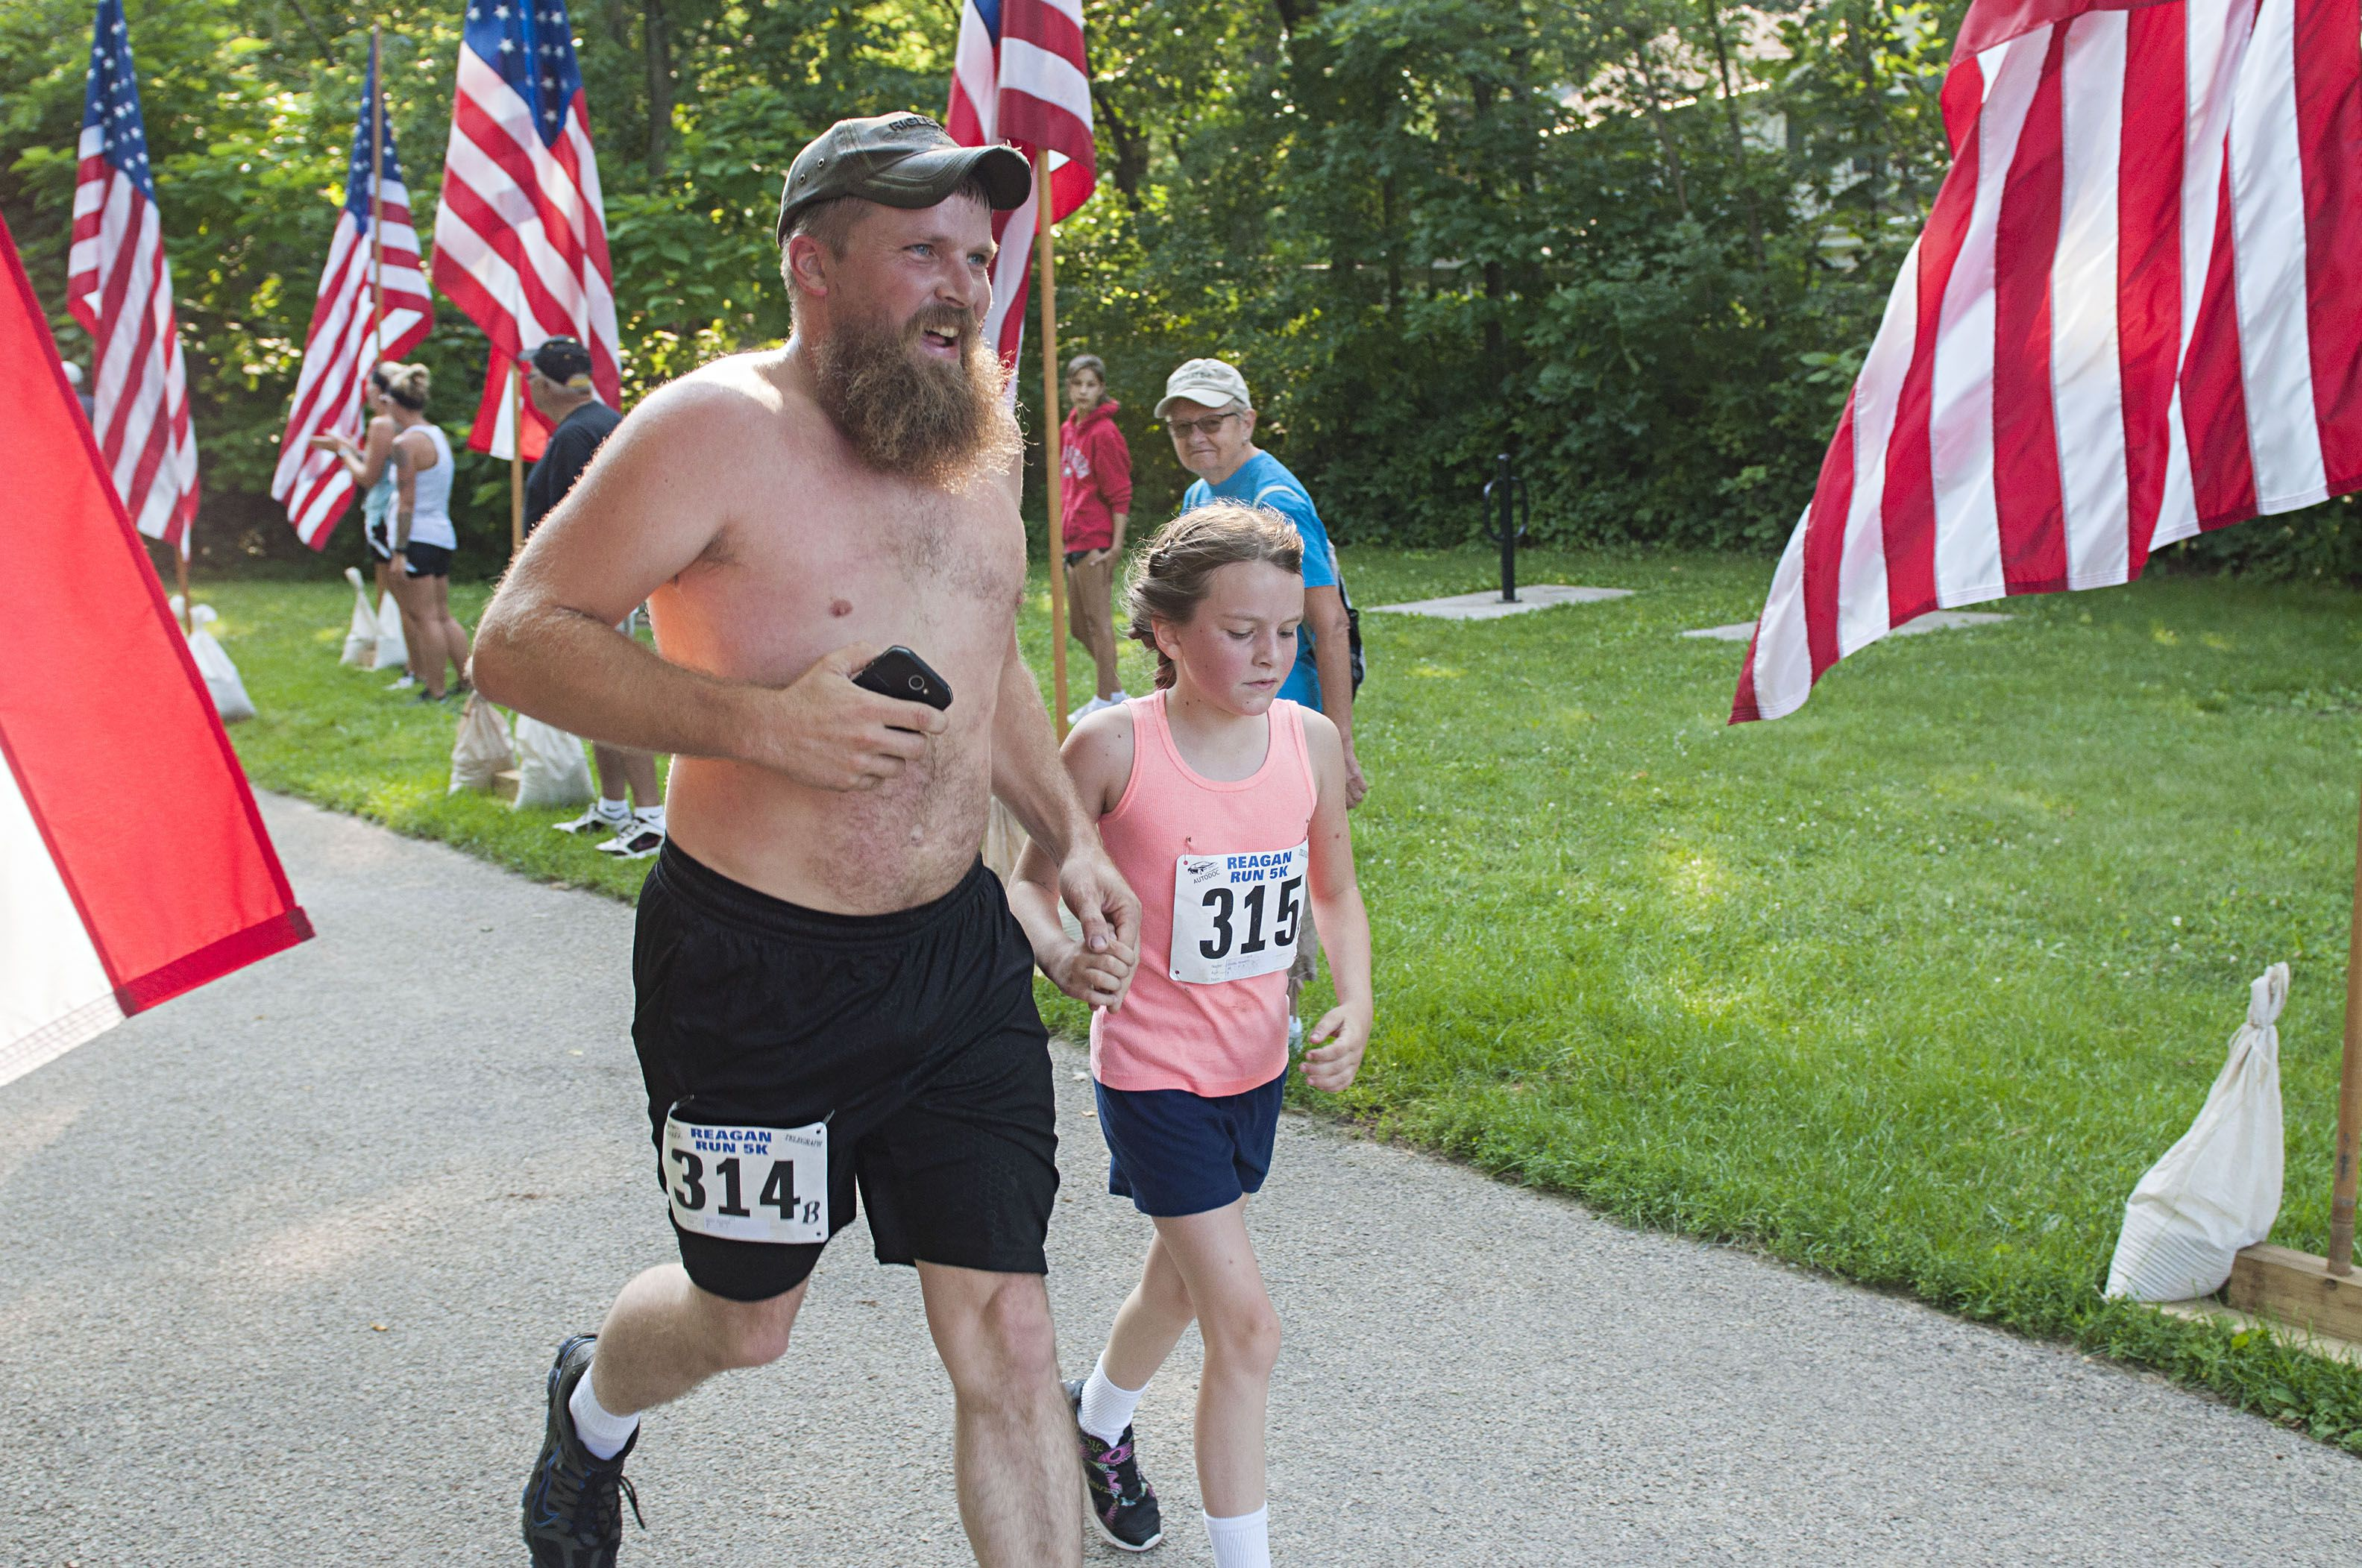 Jason Howlett crosses the line with his daughter Saturday. The two clocked a time of 33:41.